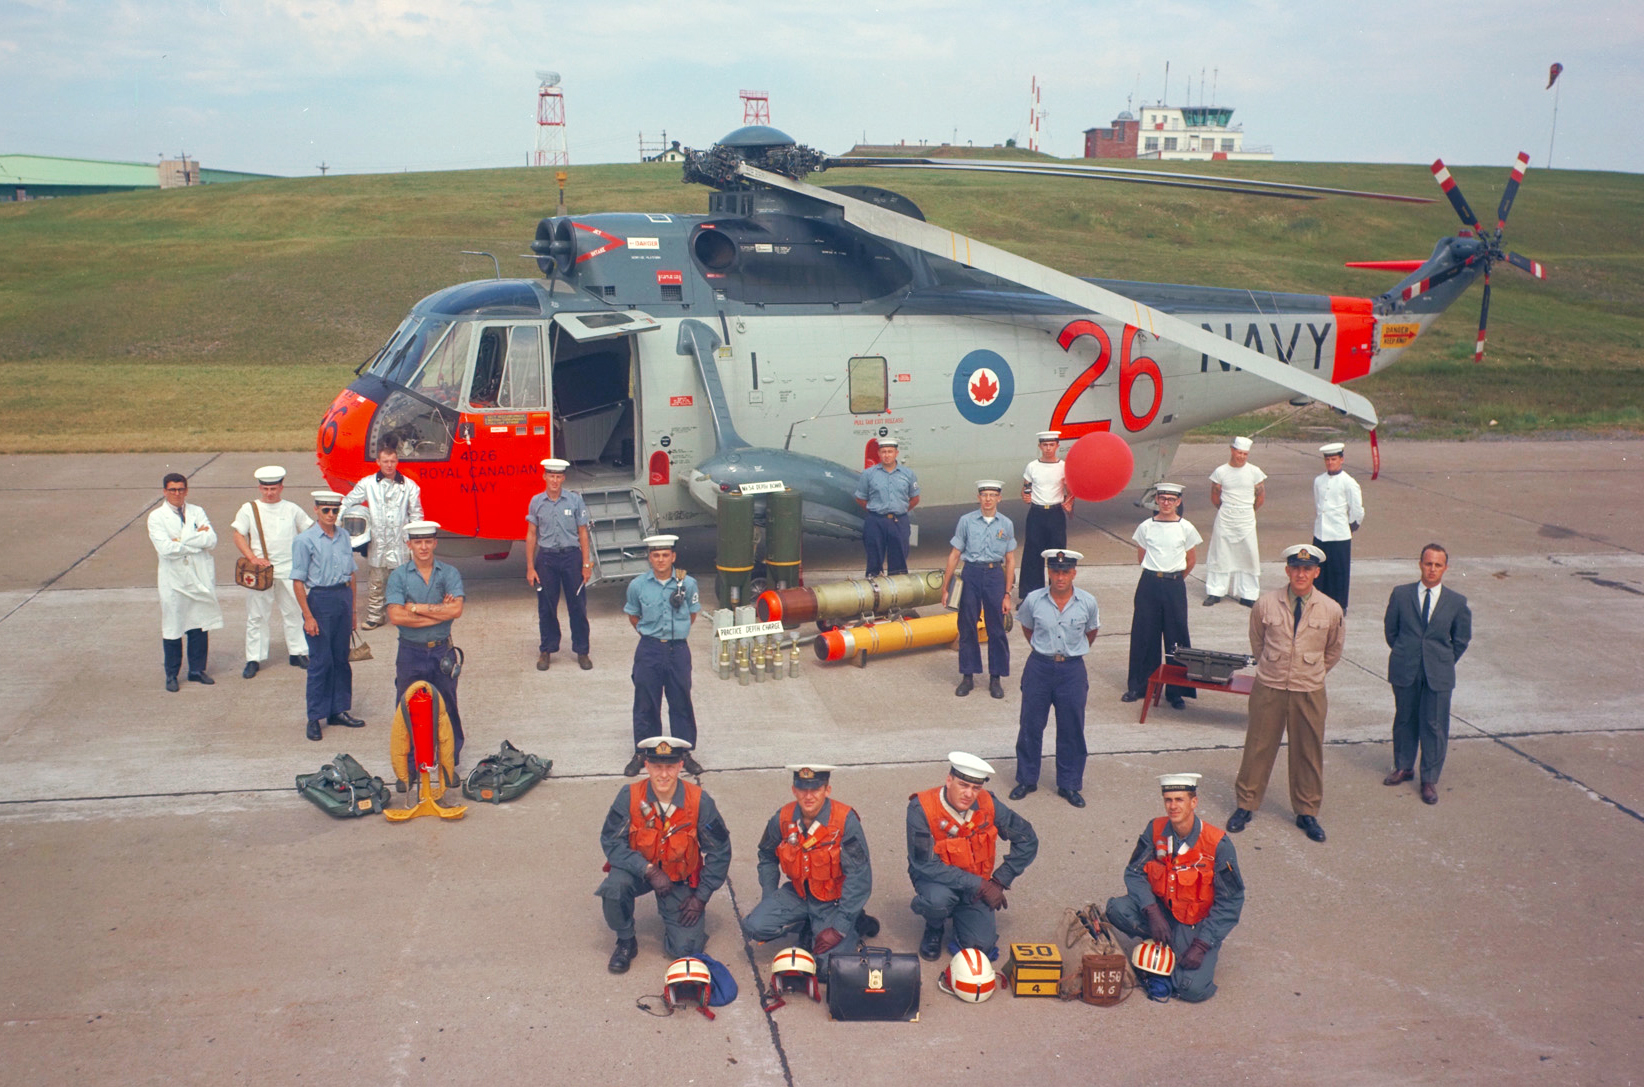 Representatives of all those who keep the Royal Canadian Navy's Sea King helicopters flying pose with the helicopter circa 1966. Among the occupations represented are maintenance, safety, aviation engineering, weapons, medical and administration. The helicopter is from HS-50 Squadron, based at Shearwater, Nova Scotia. PHOTO: DND Archives, SWC66-719-1